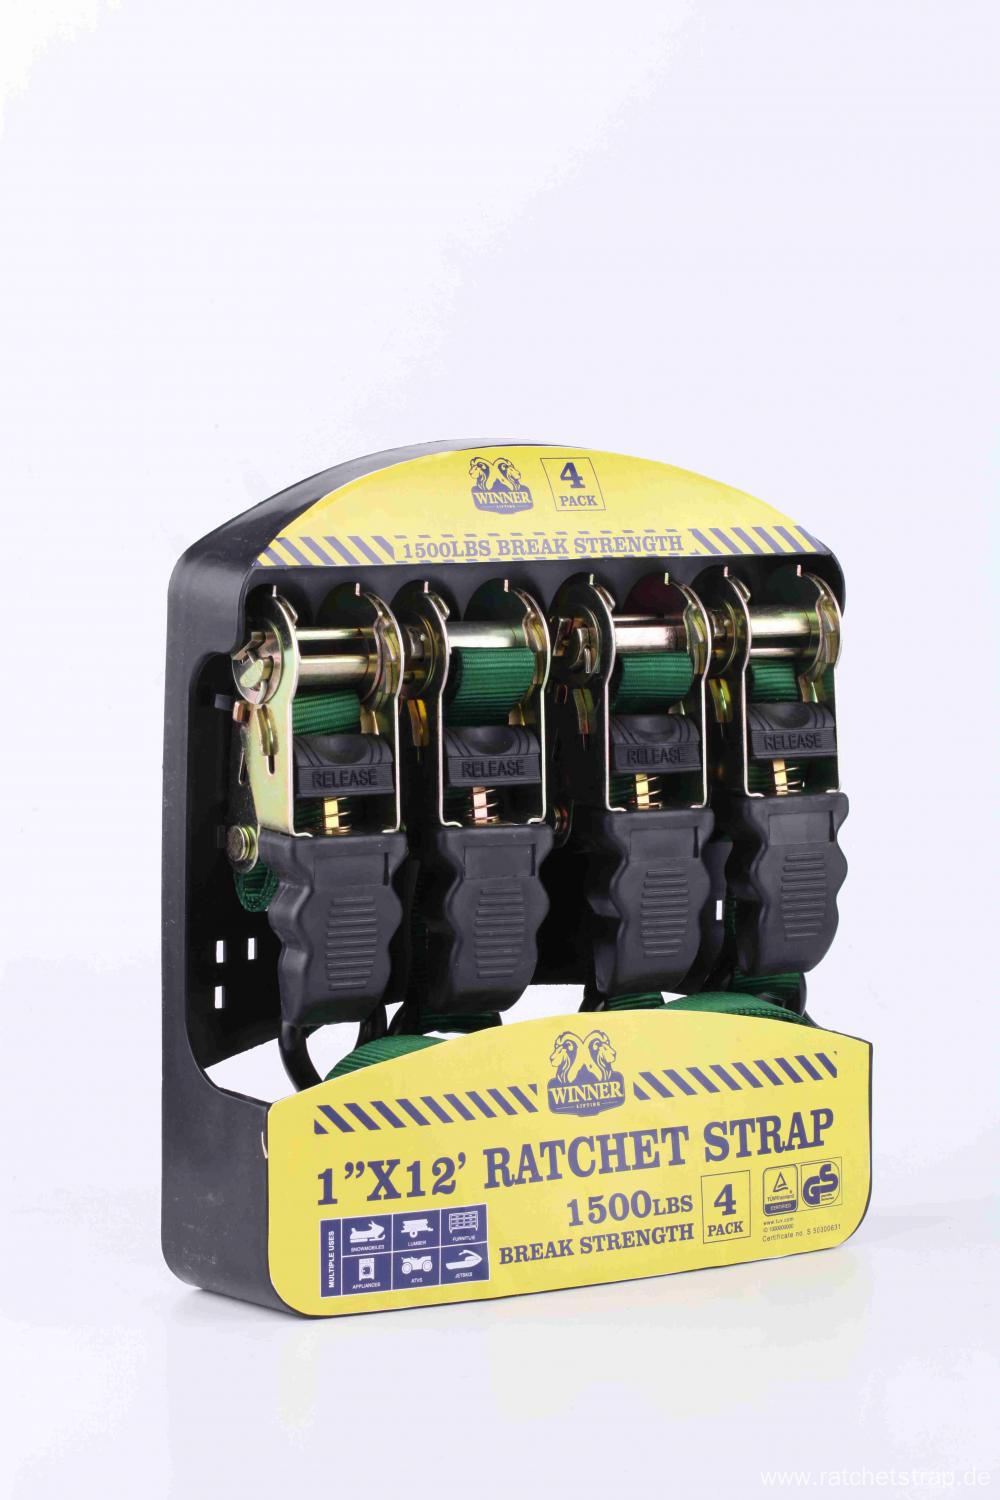 25mm Rubber Handle Packaged Ratchet Strap